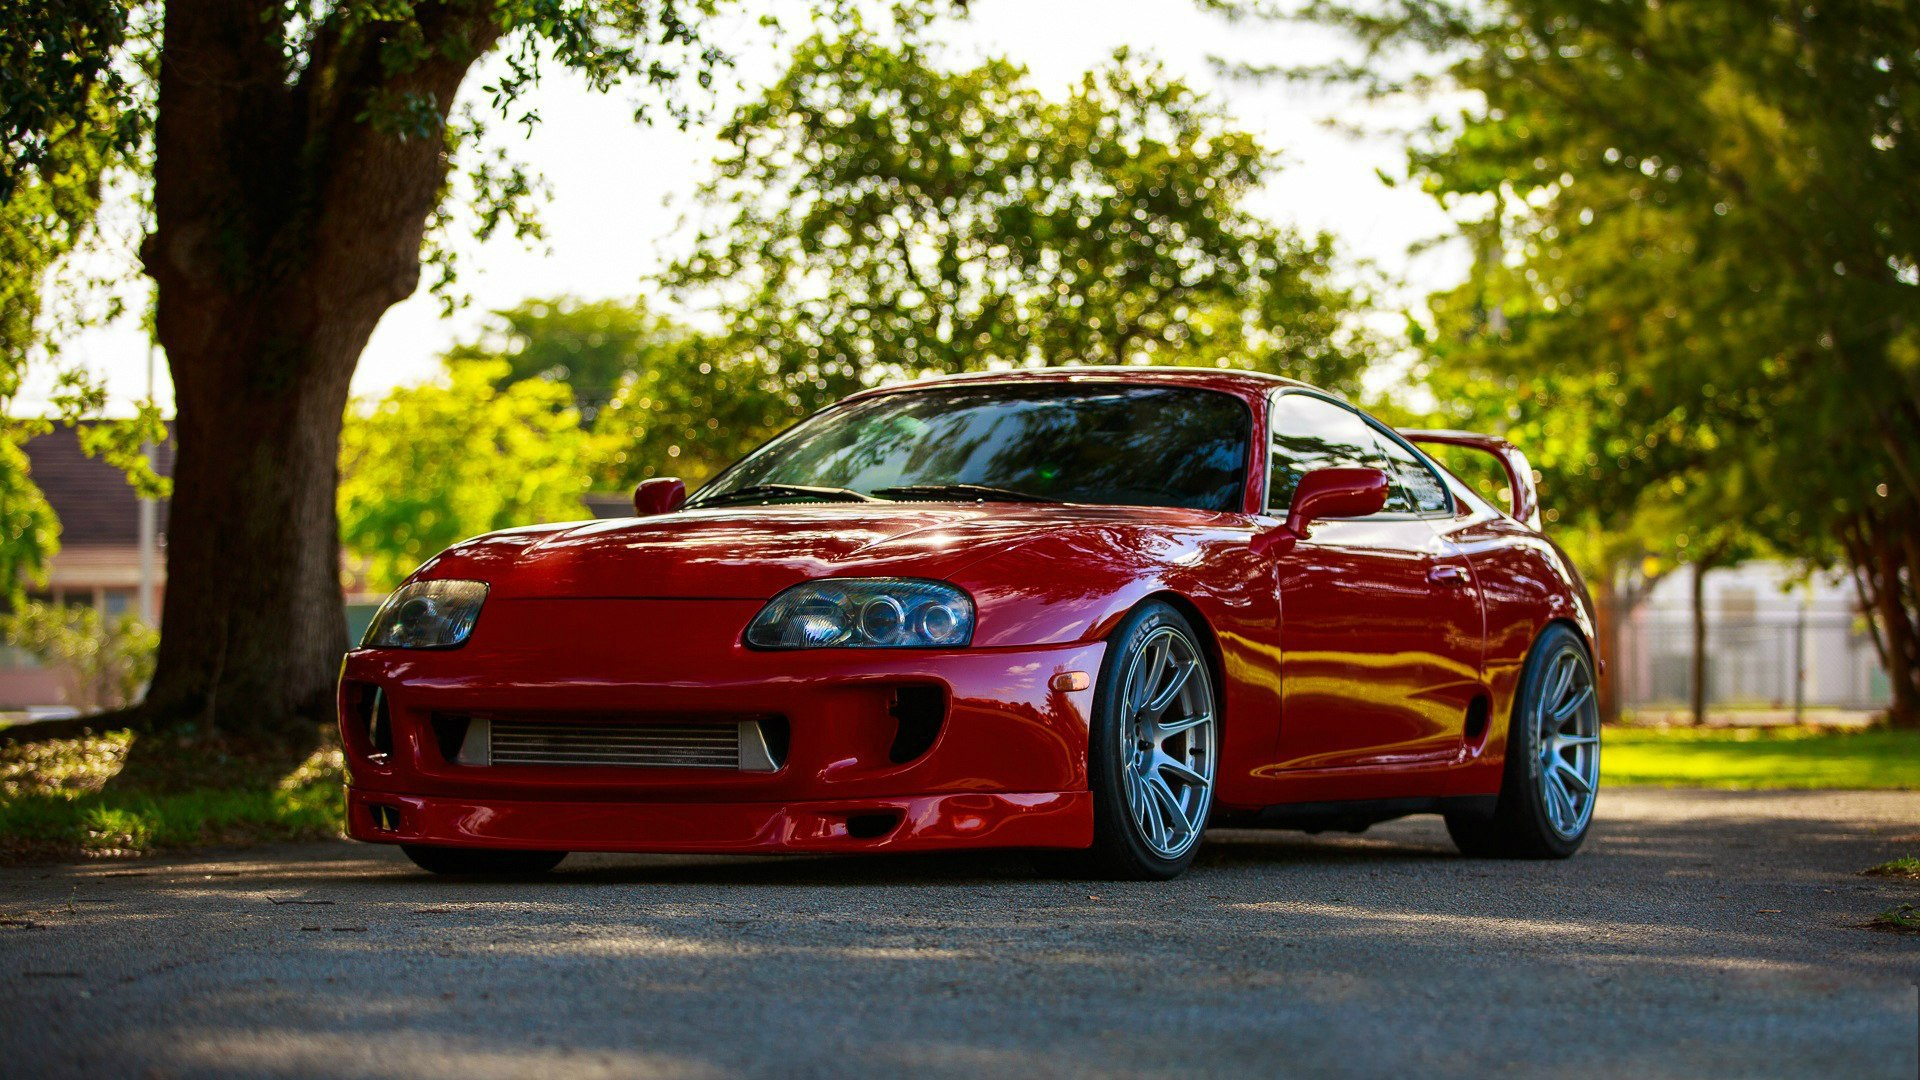 Toyota Supra Wallpapers Images Photos Pictures Backgrounds